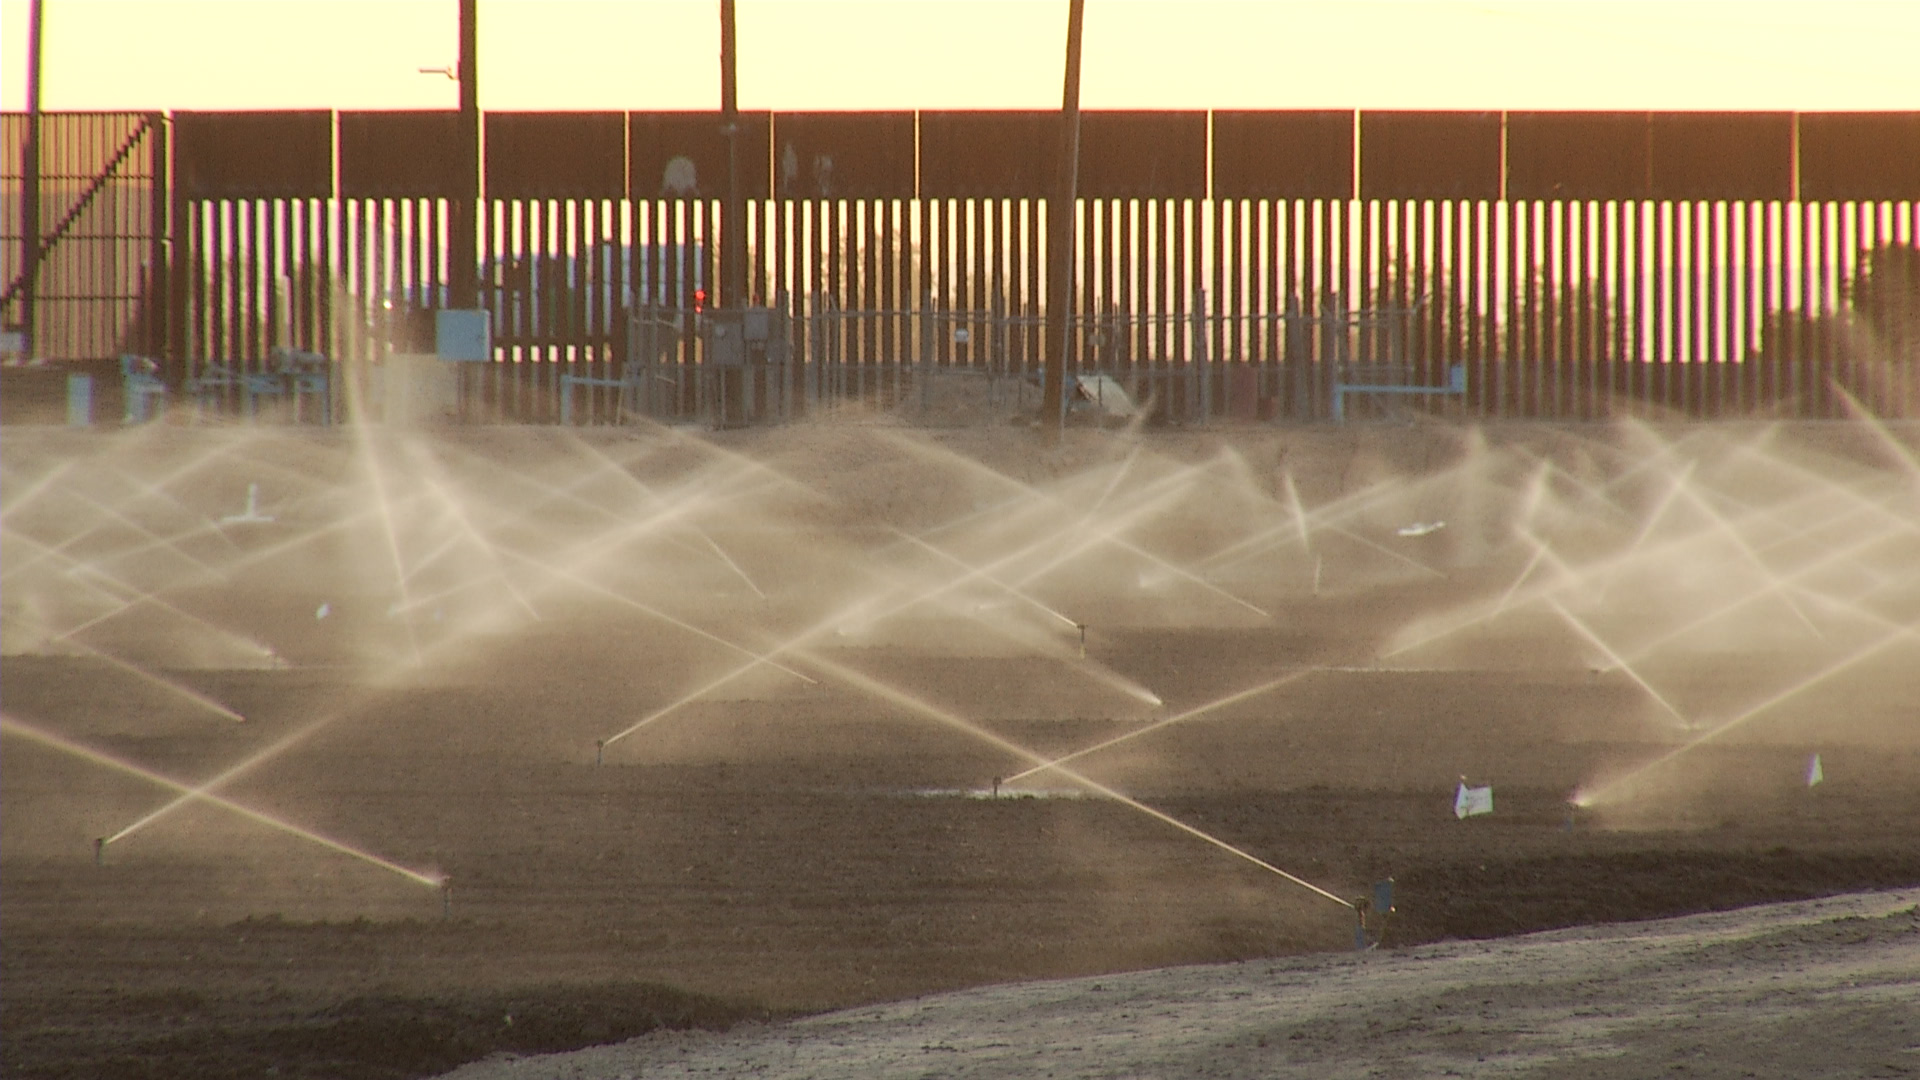 Watering at a Yuma farm, 2014.